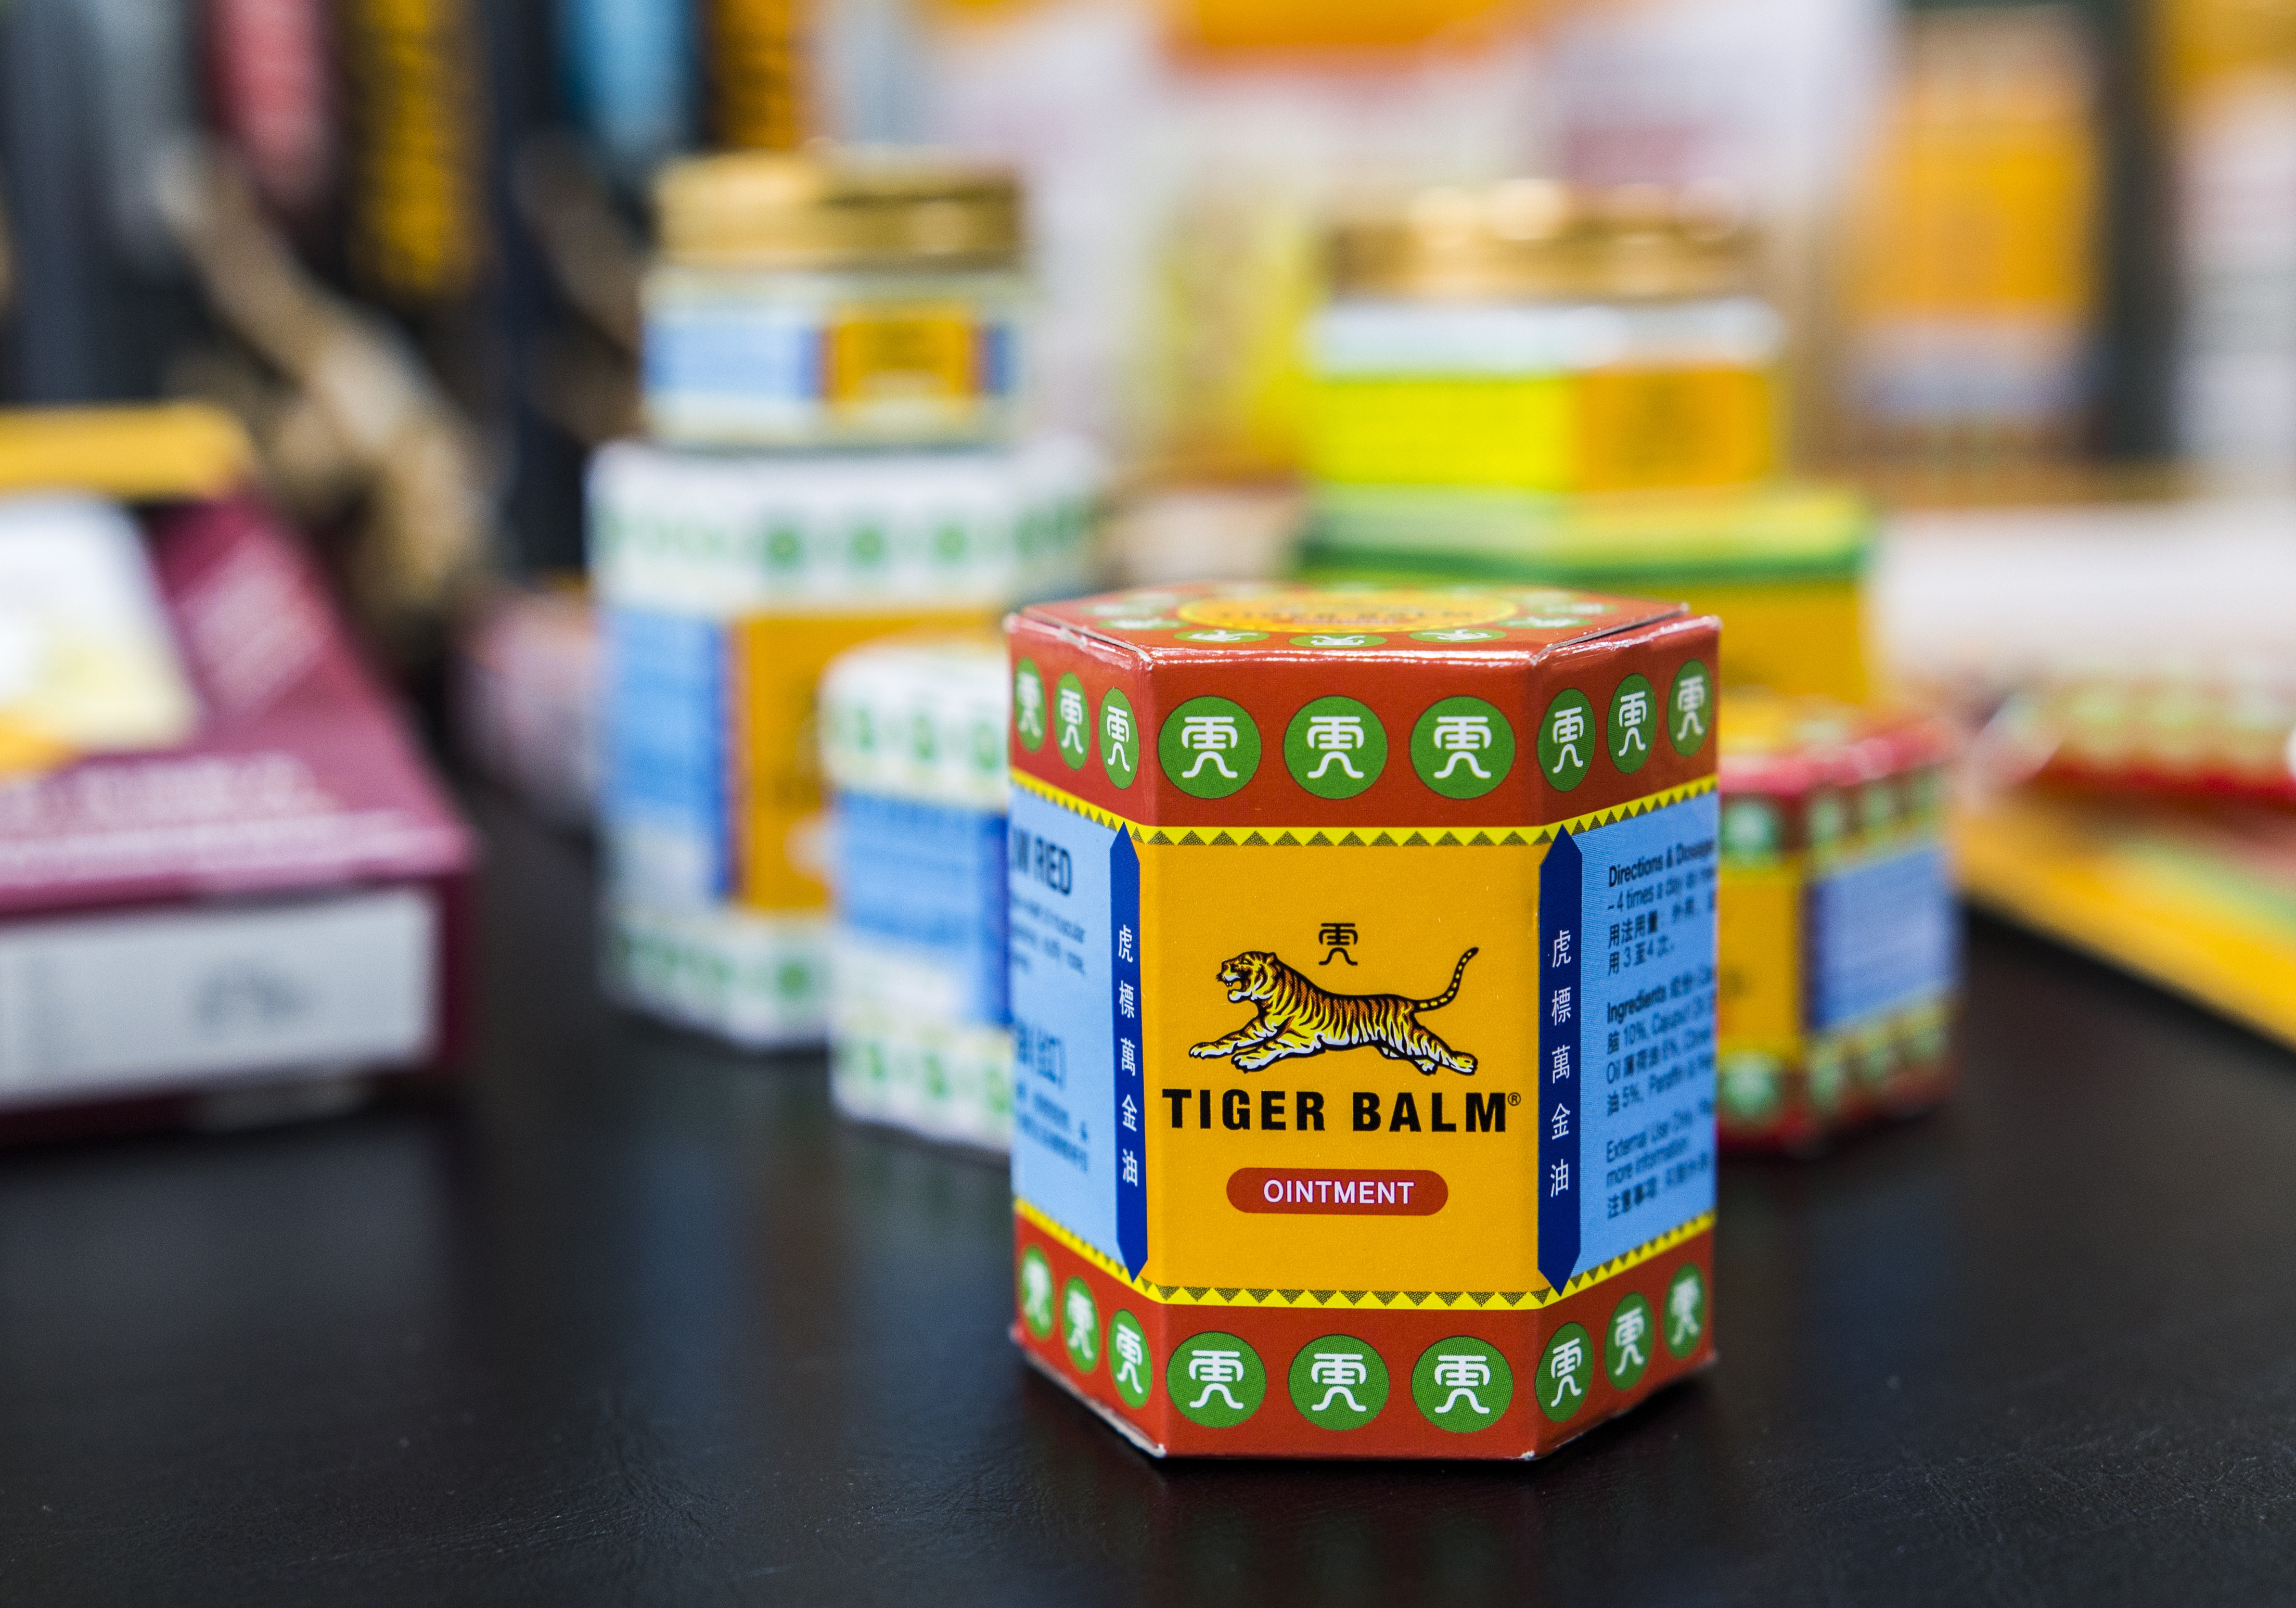 Asian medicine and treatment - tiger balm